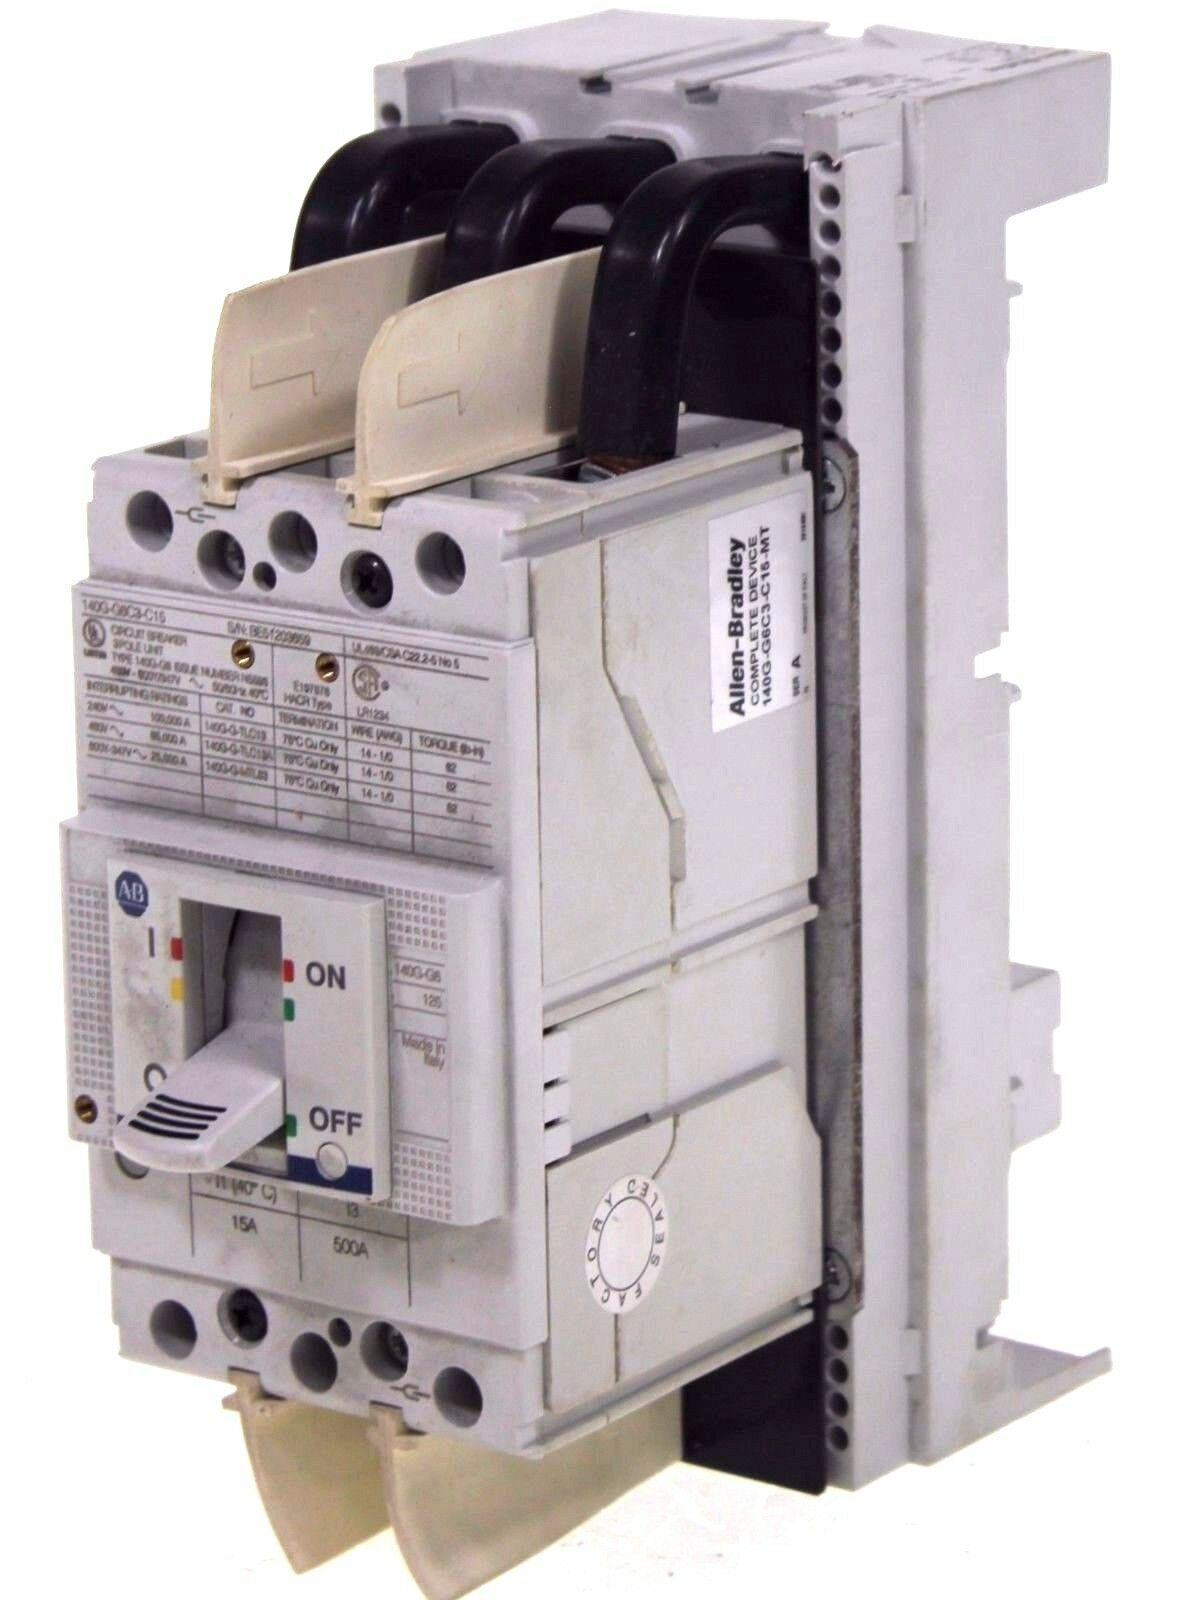 Allen Bradley 140G-G6C3-C15-MT /A Circuit Breaker Assembly 15A 3-Pole